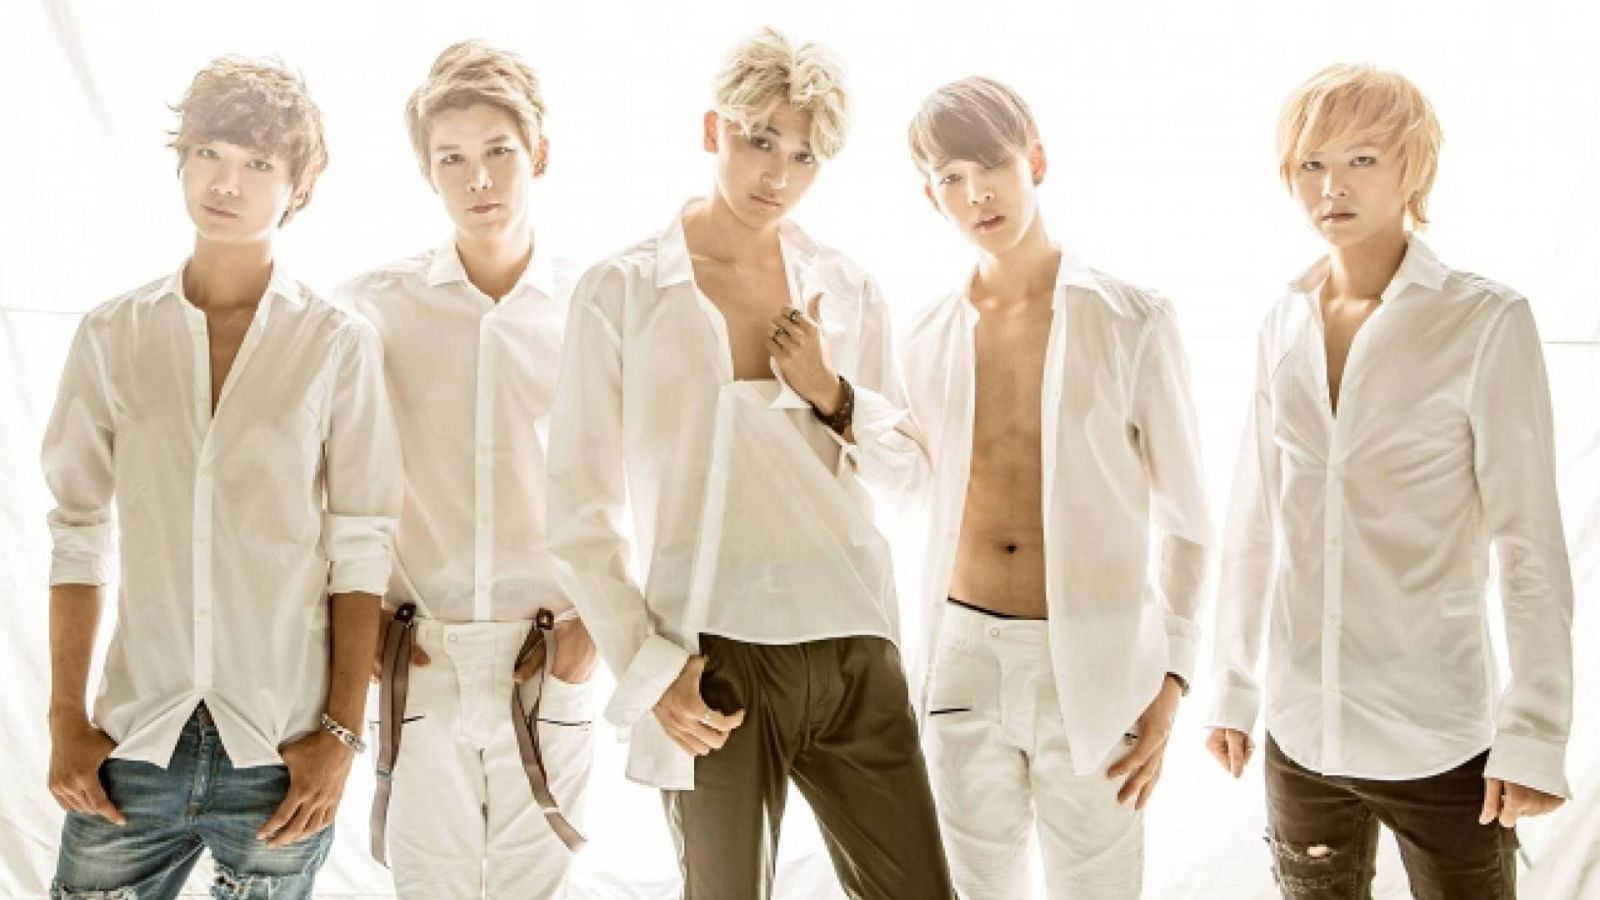 LEDApple in Finland © LEDApple. All Rights Reserved.